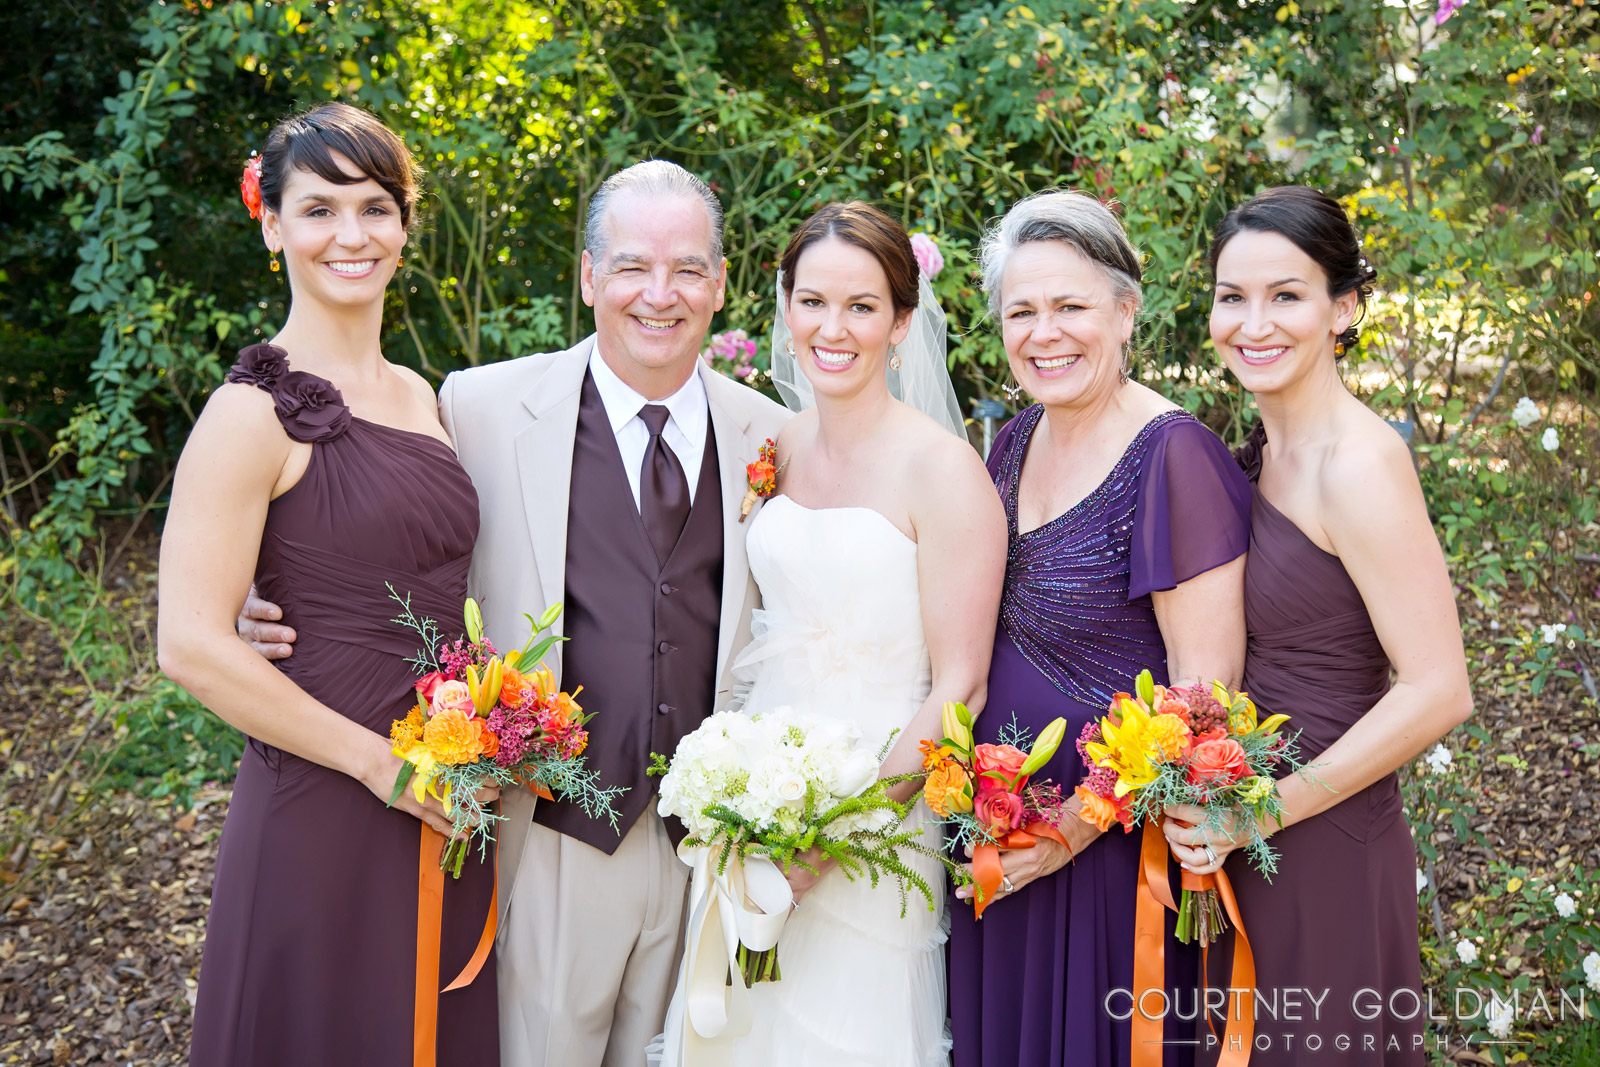 Atlanta-Wedding-Photography-by-Courtney-Goldman-10.jpg